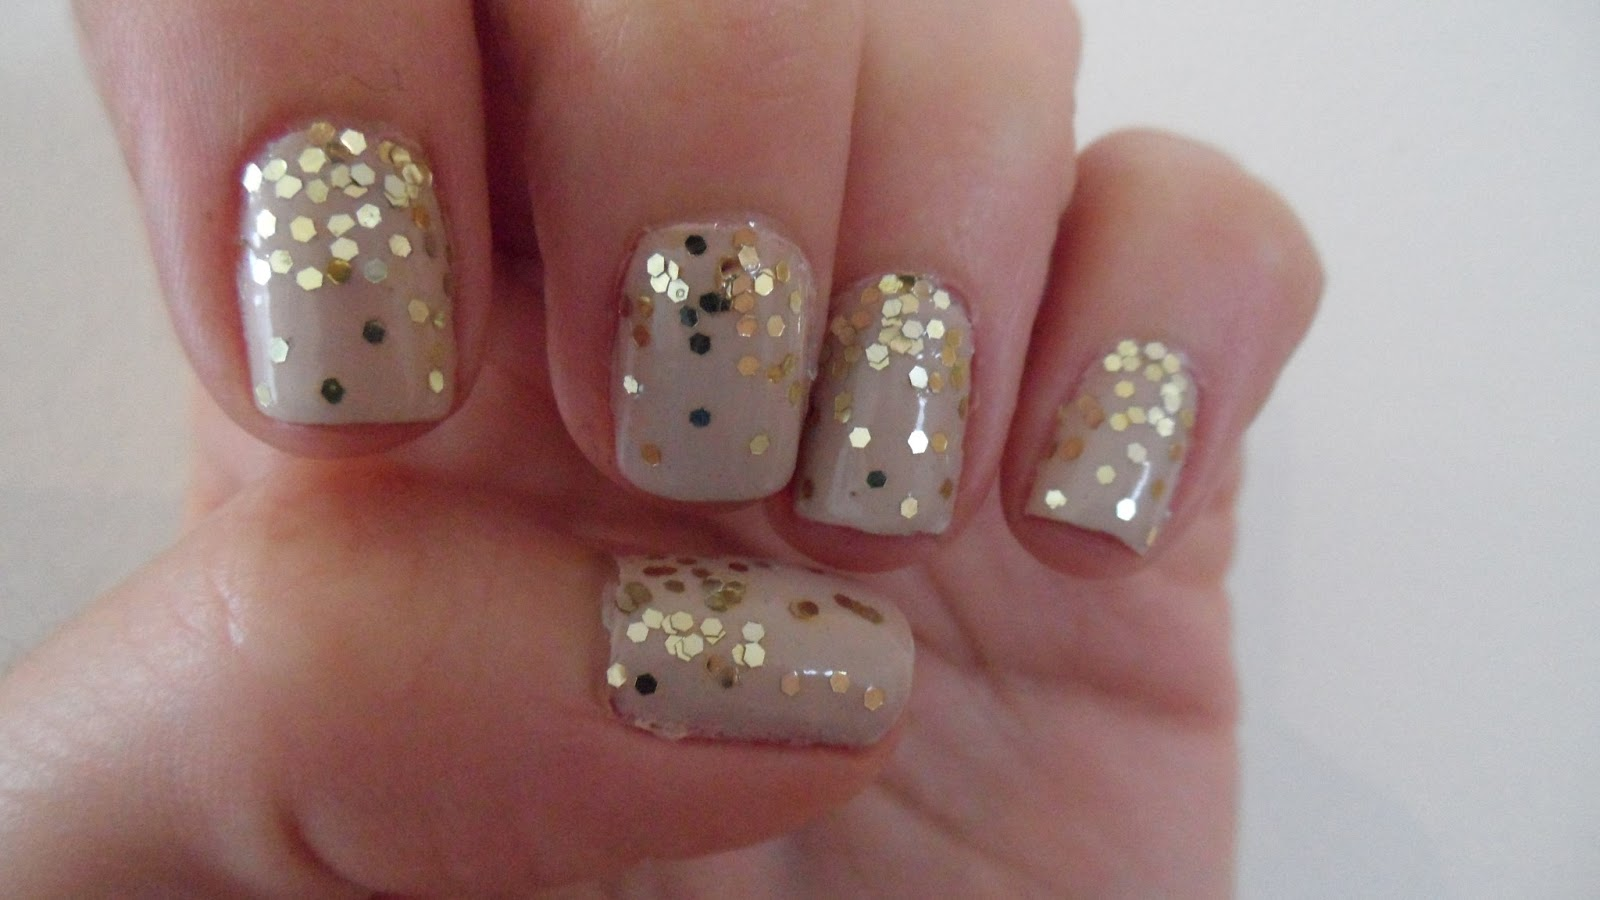 Additionally Flower Nail Art Design Together With Acrylic Designs